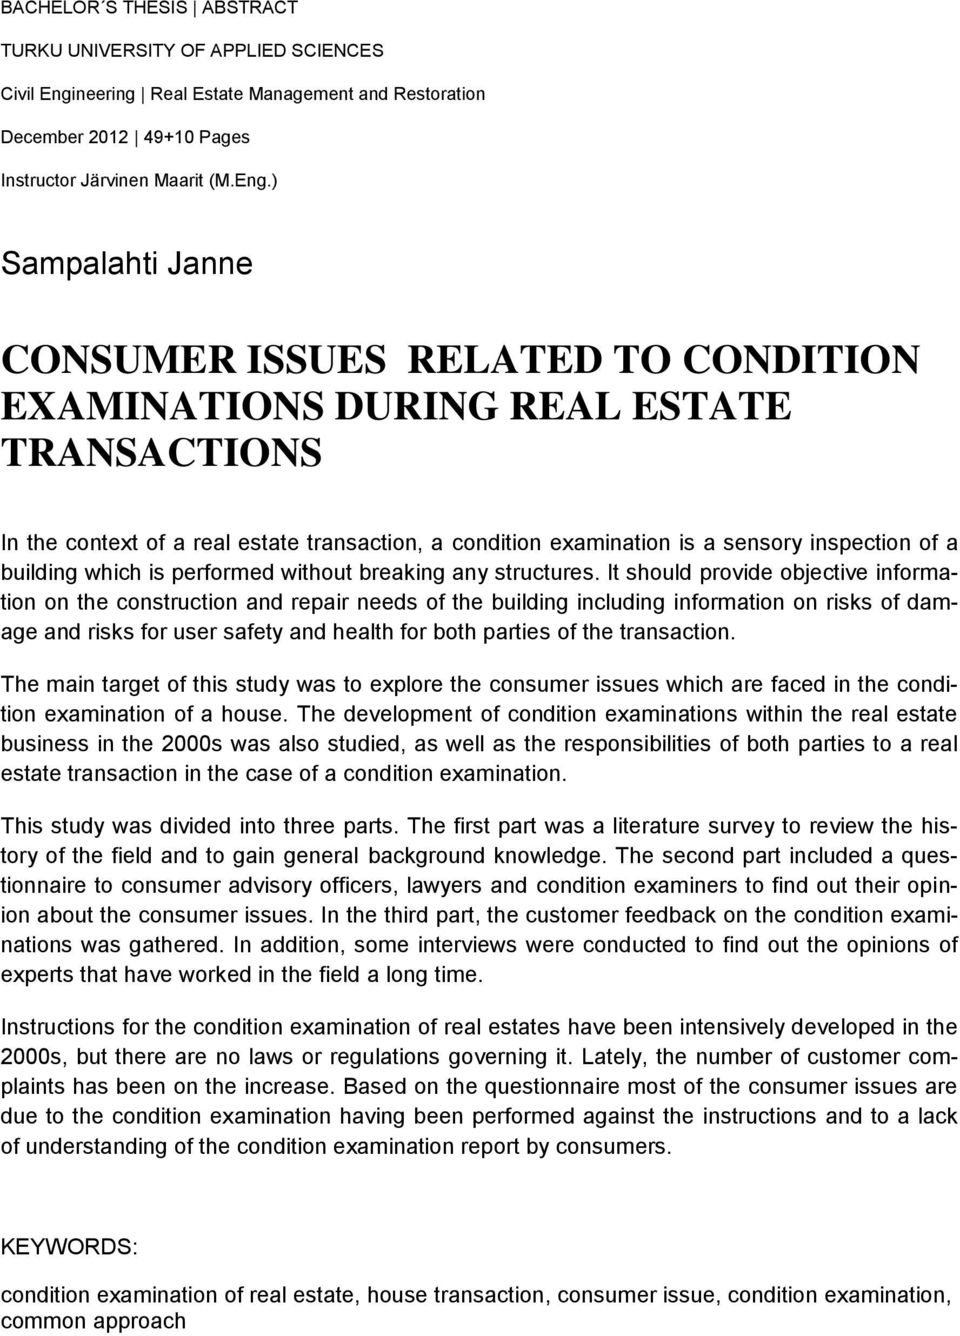 ) Sampalahti Janne CONSUMER ISSUES RELATED TO CONDITION EXAMINATIONS DURING REAL ESTATE TRANSACTIONS In the context of a real estate transaction, a condition examination is a sensory inspection of a